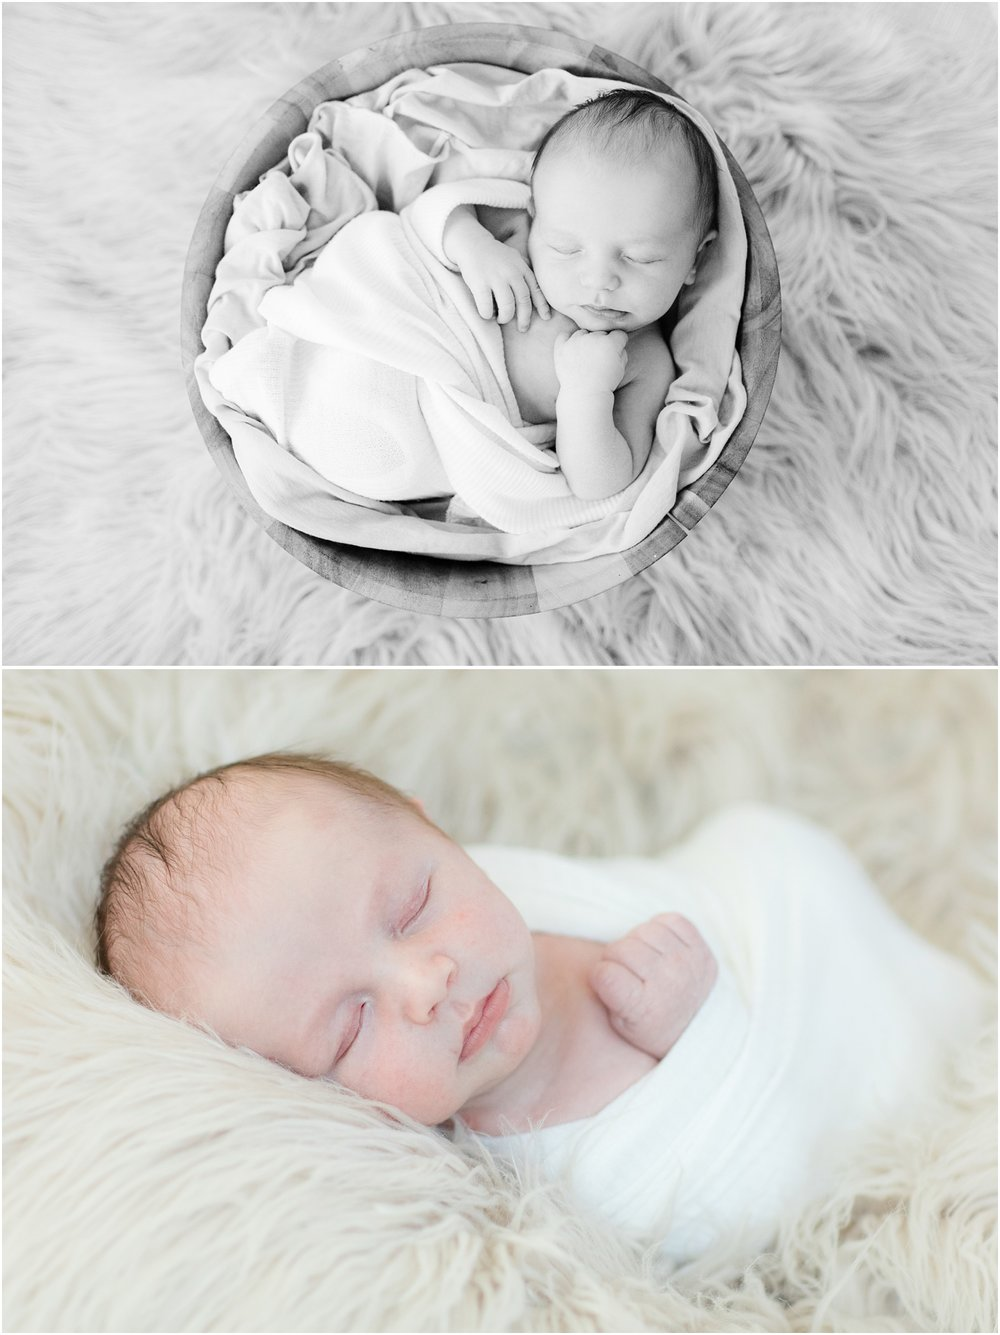 Simple natural newborn photos of baby boy.